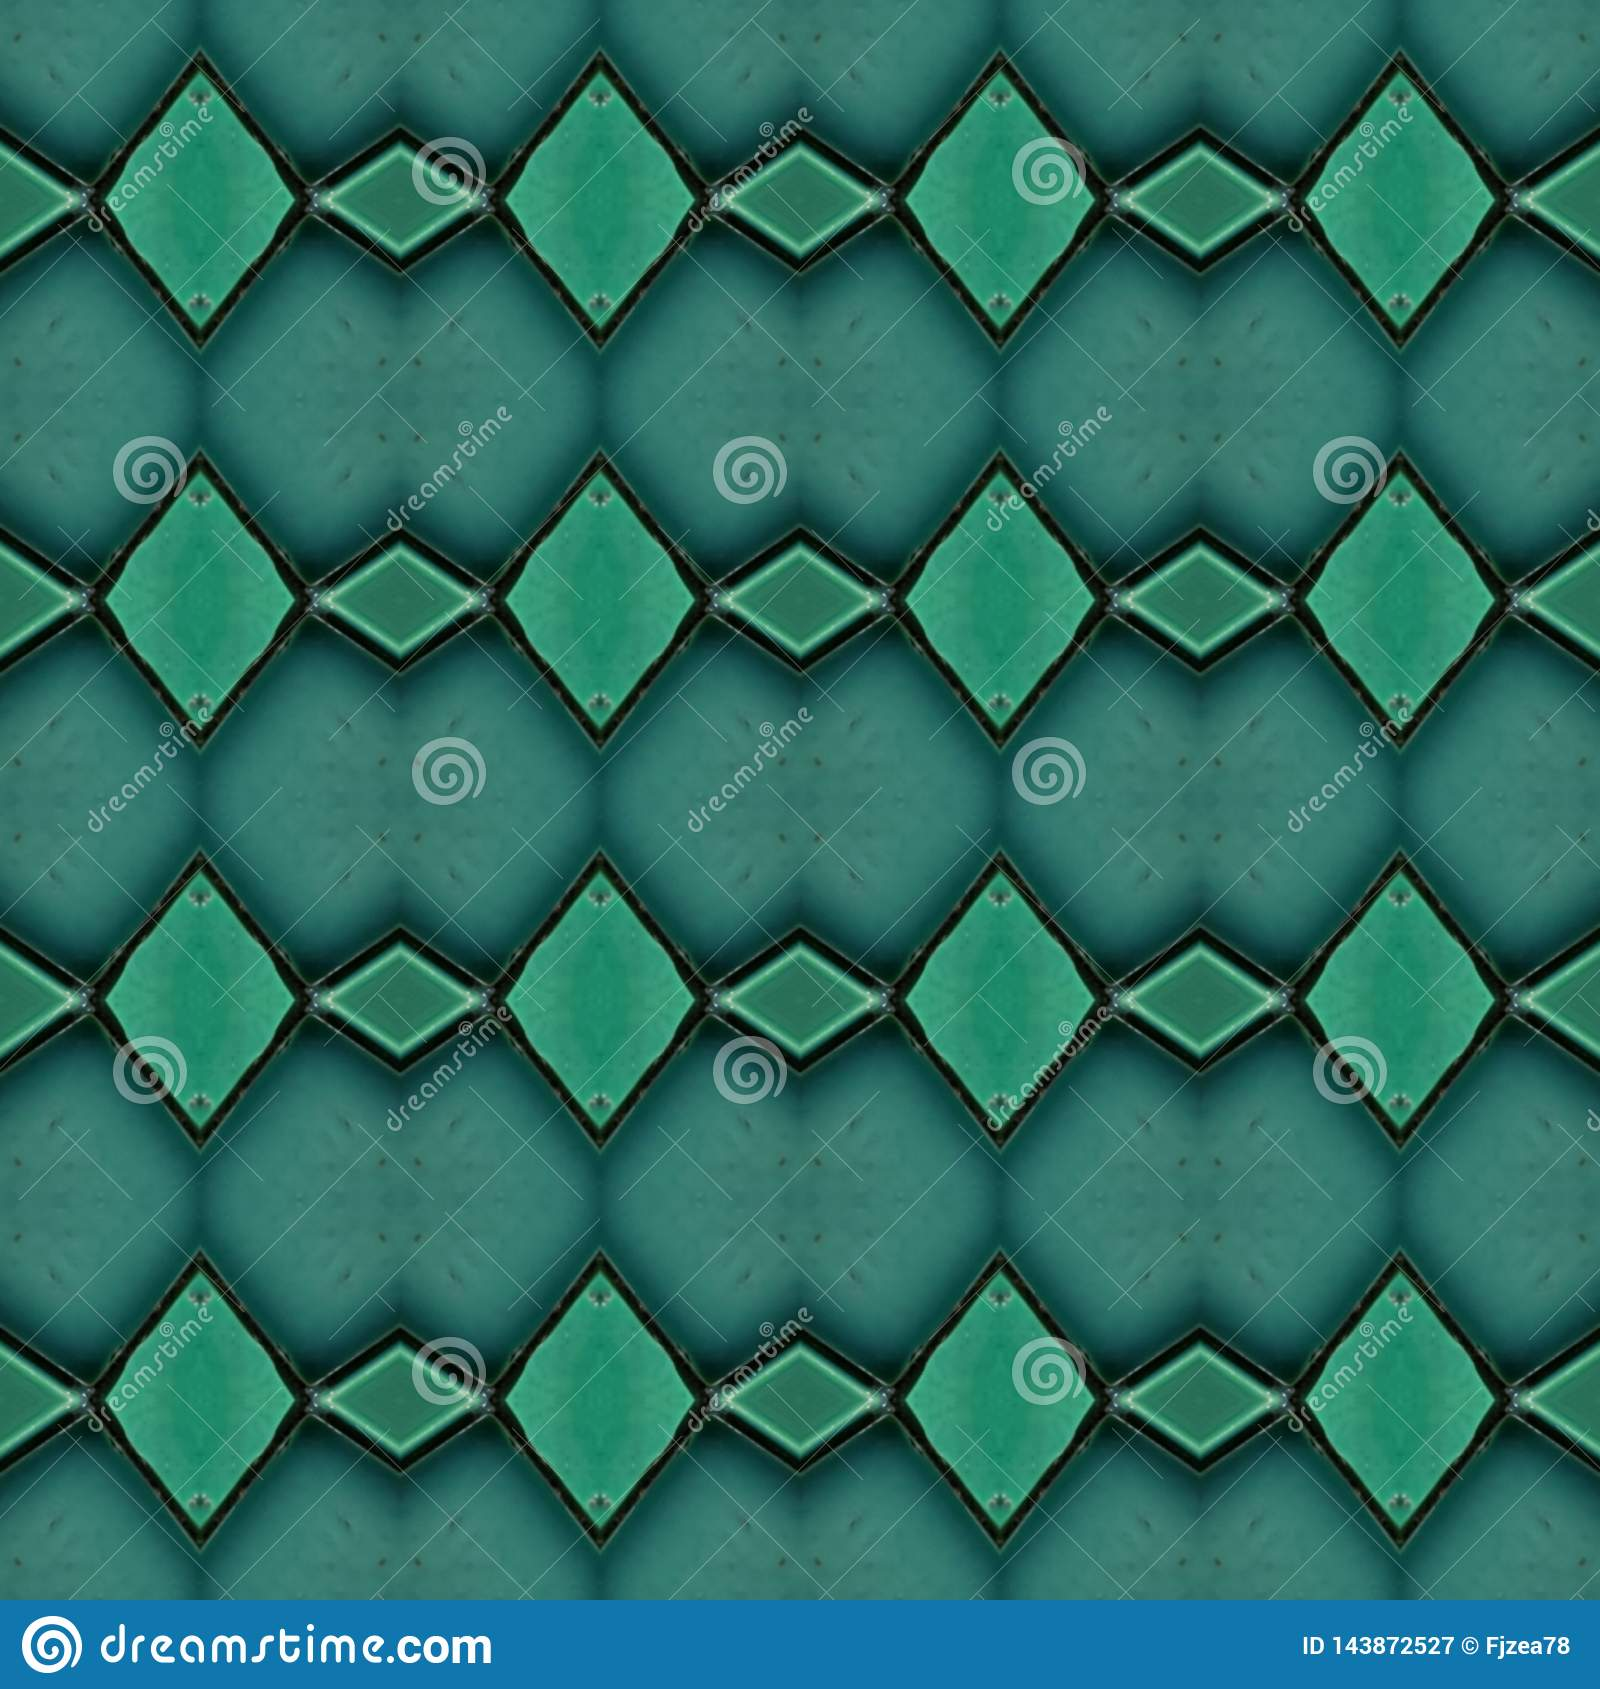 Abstract Collage Design From An Image Of Marble Pieces In Green Colors Background And Texture Stock Illustration Illustration Of Wall Decor 143872527